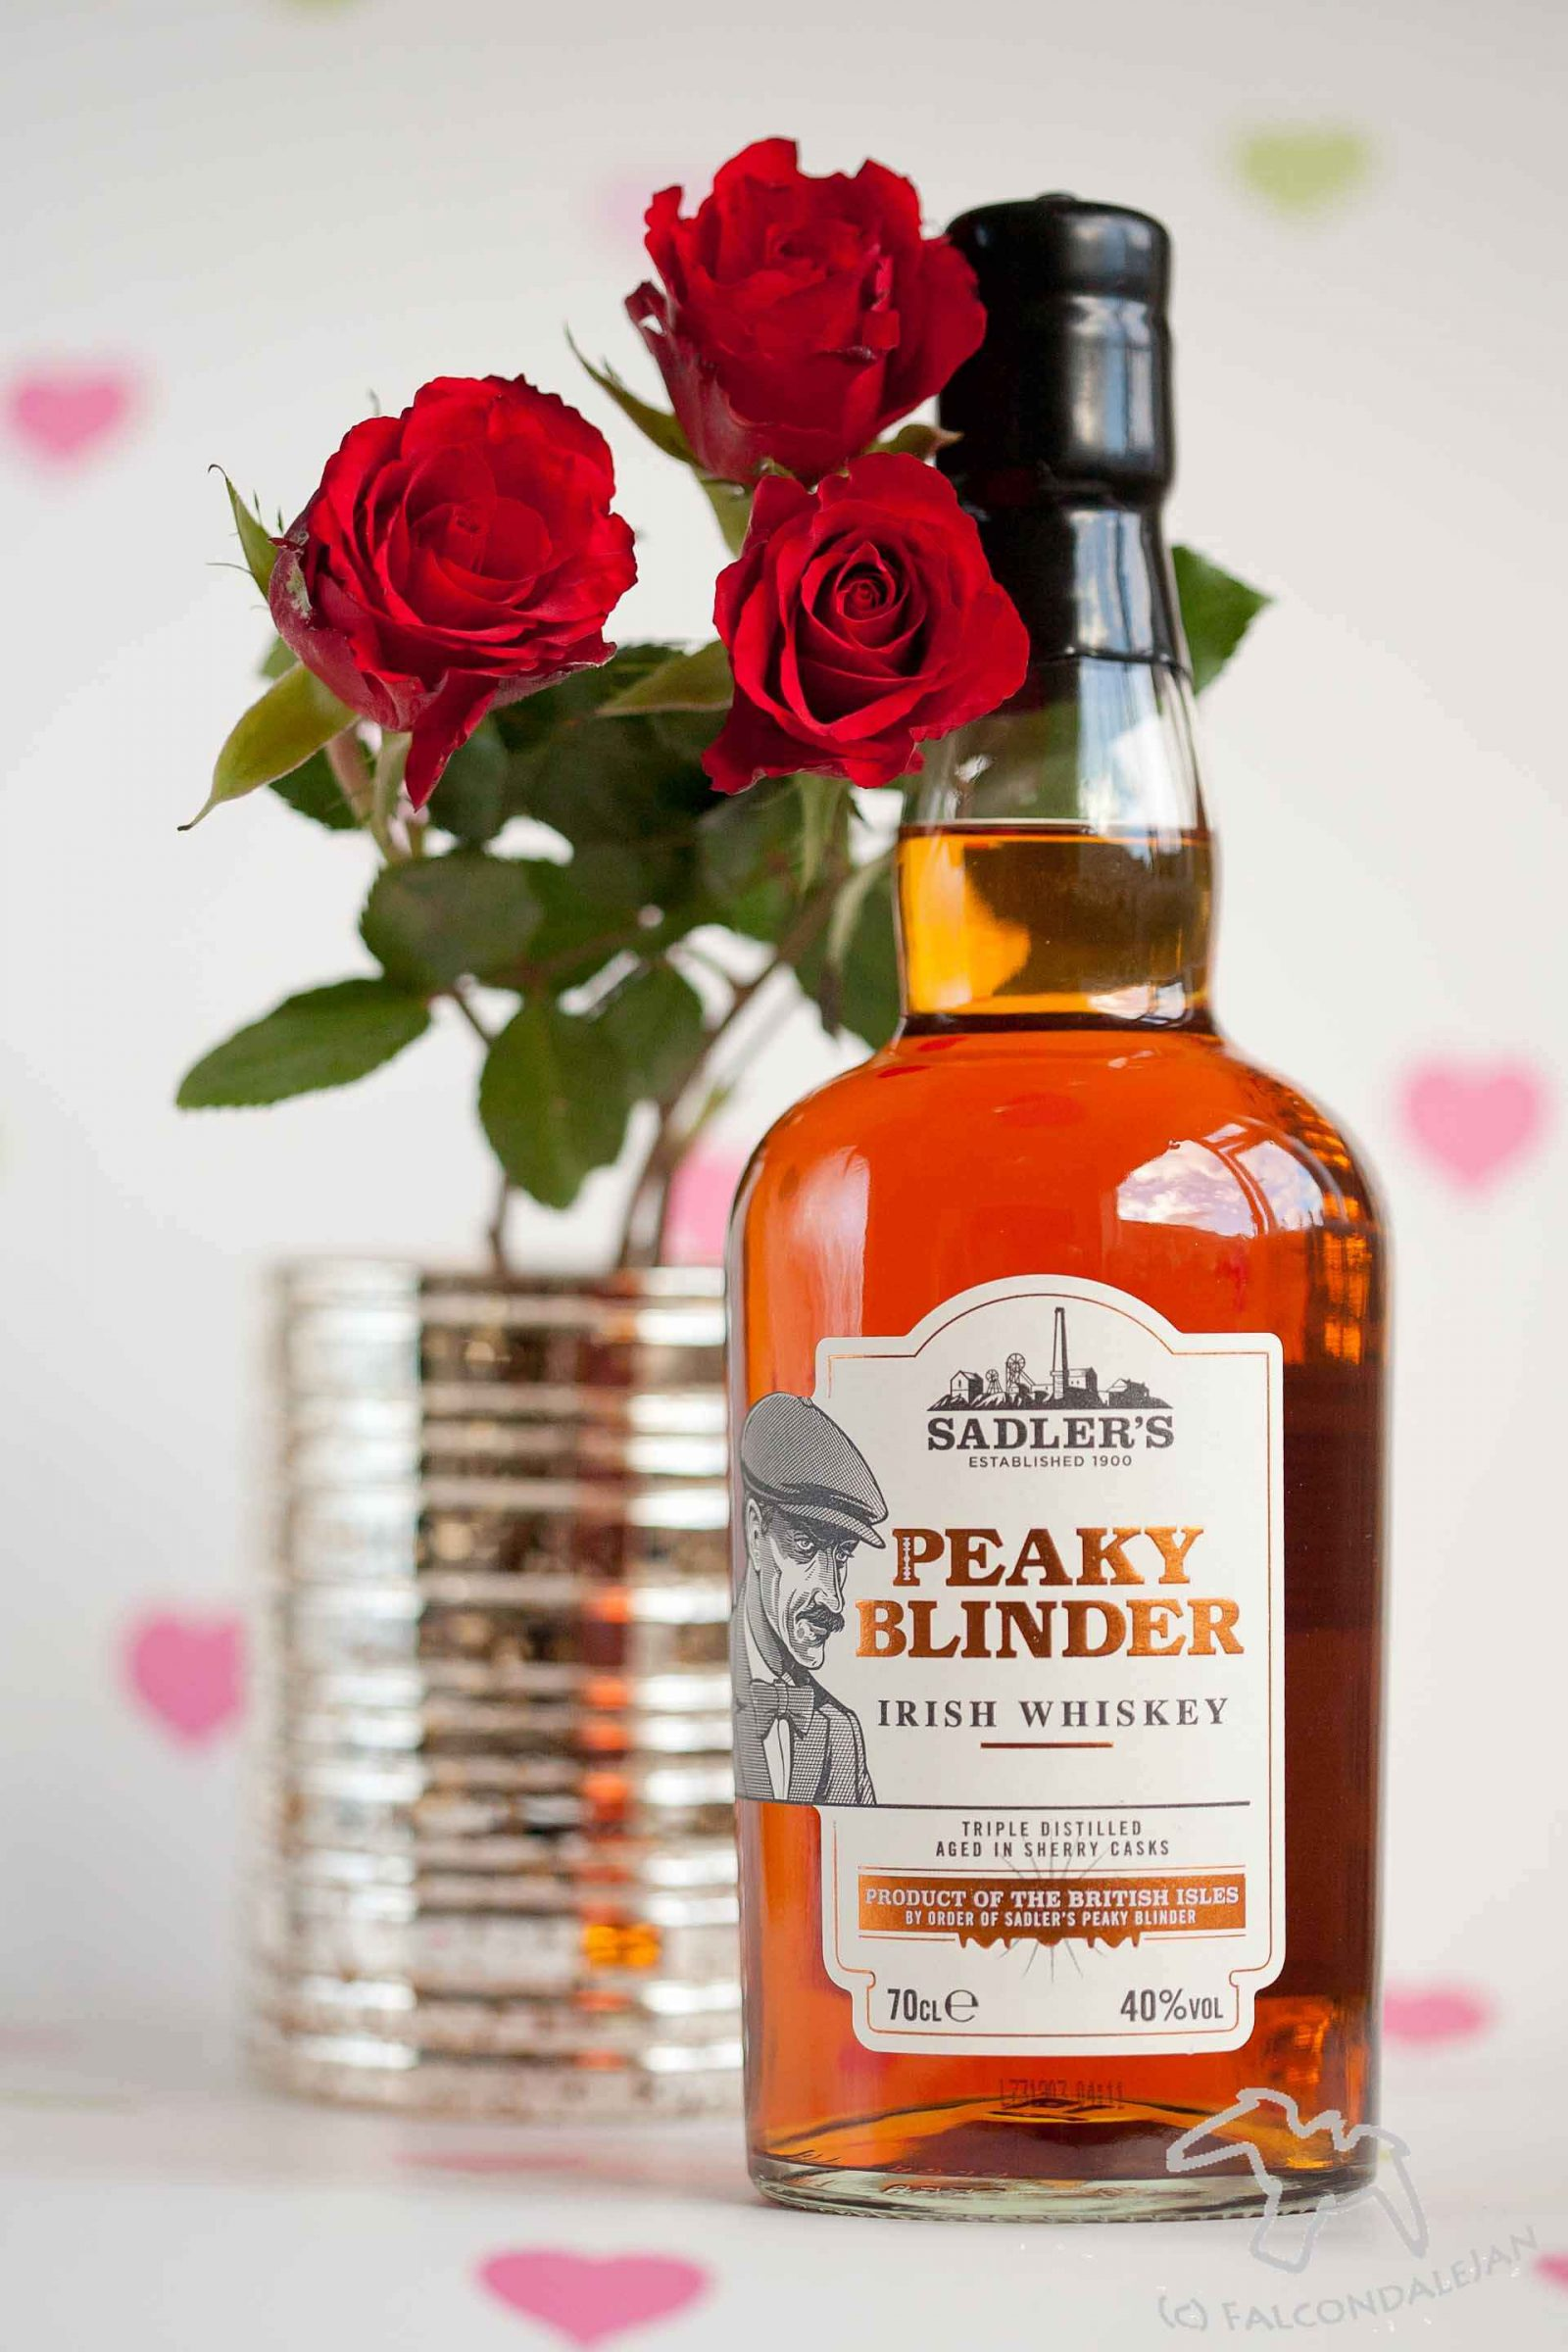 Peaky Blinder Irish Whisky with roses and hearts. Boozy Valentine's Gift Guide and Drinks Review on Falcondale Life blog. Unusual alcohol and gifts for drinkers on Valentine's day. Get something for him or her which is more interesting that just chocolate and wine. On test: Liqueurs, whisky, brewing kit, drinking game. Boozy gifts reviewed by FalcondaleJan.